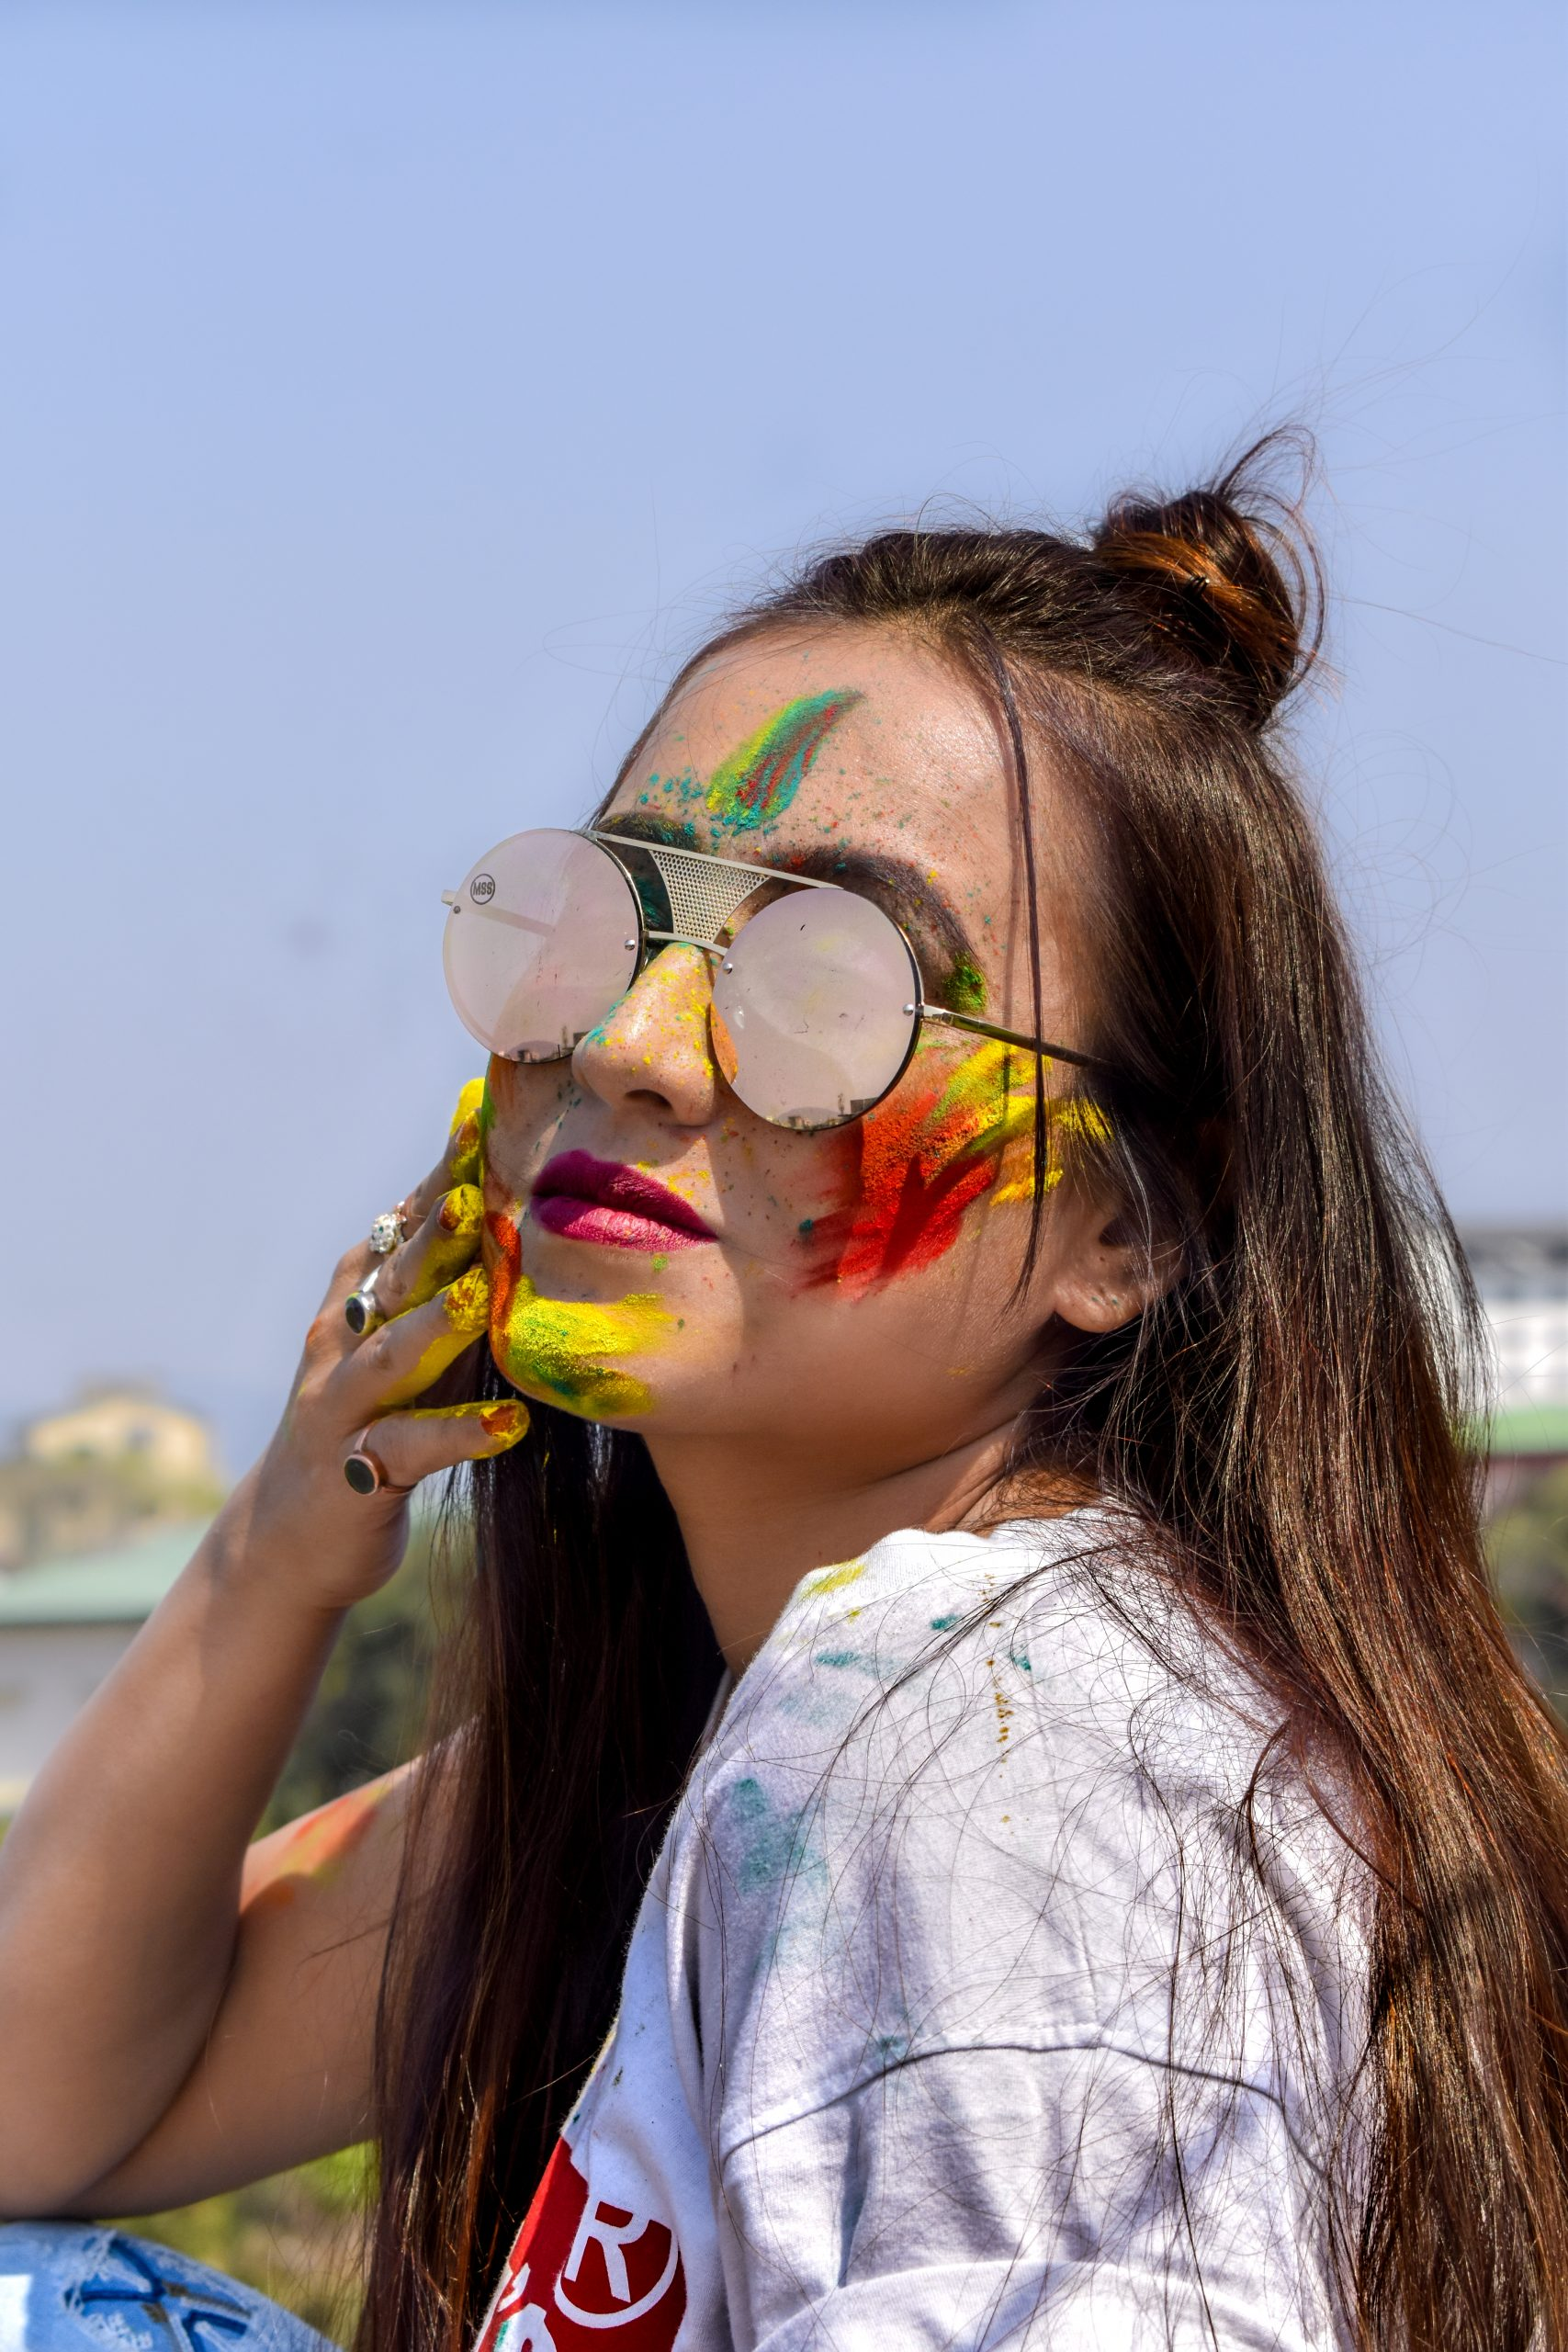 Long hair girl with sunglasses playing with colors